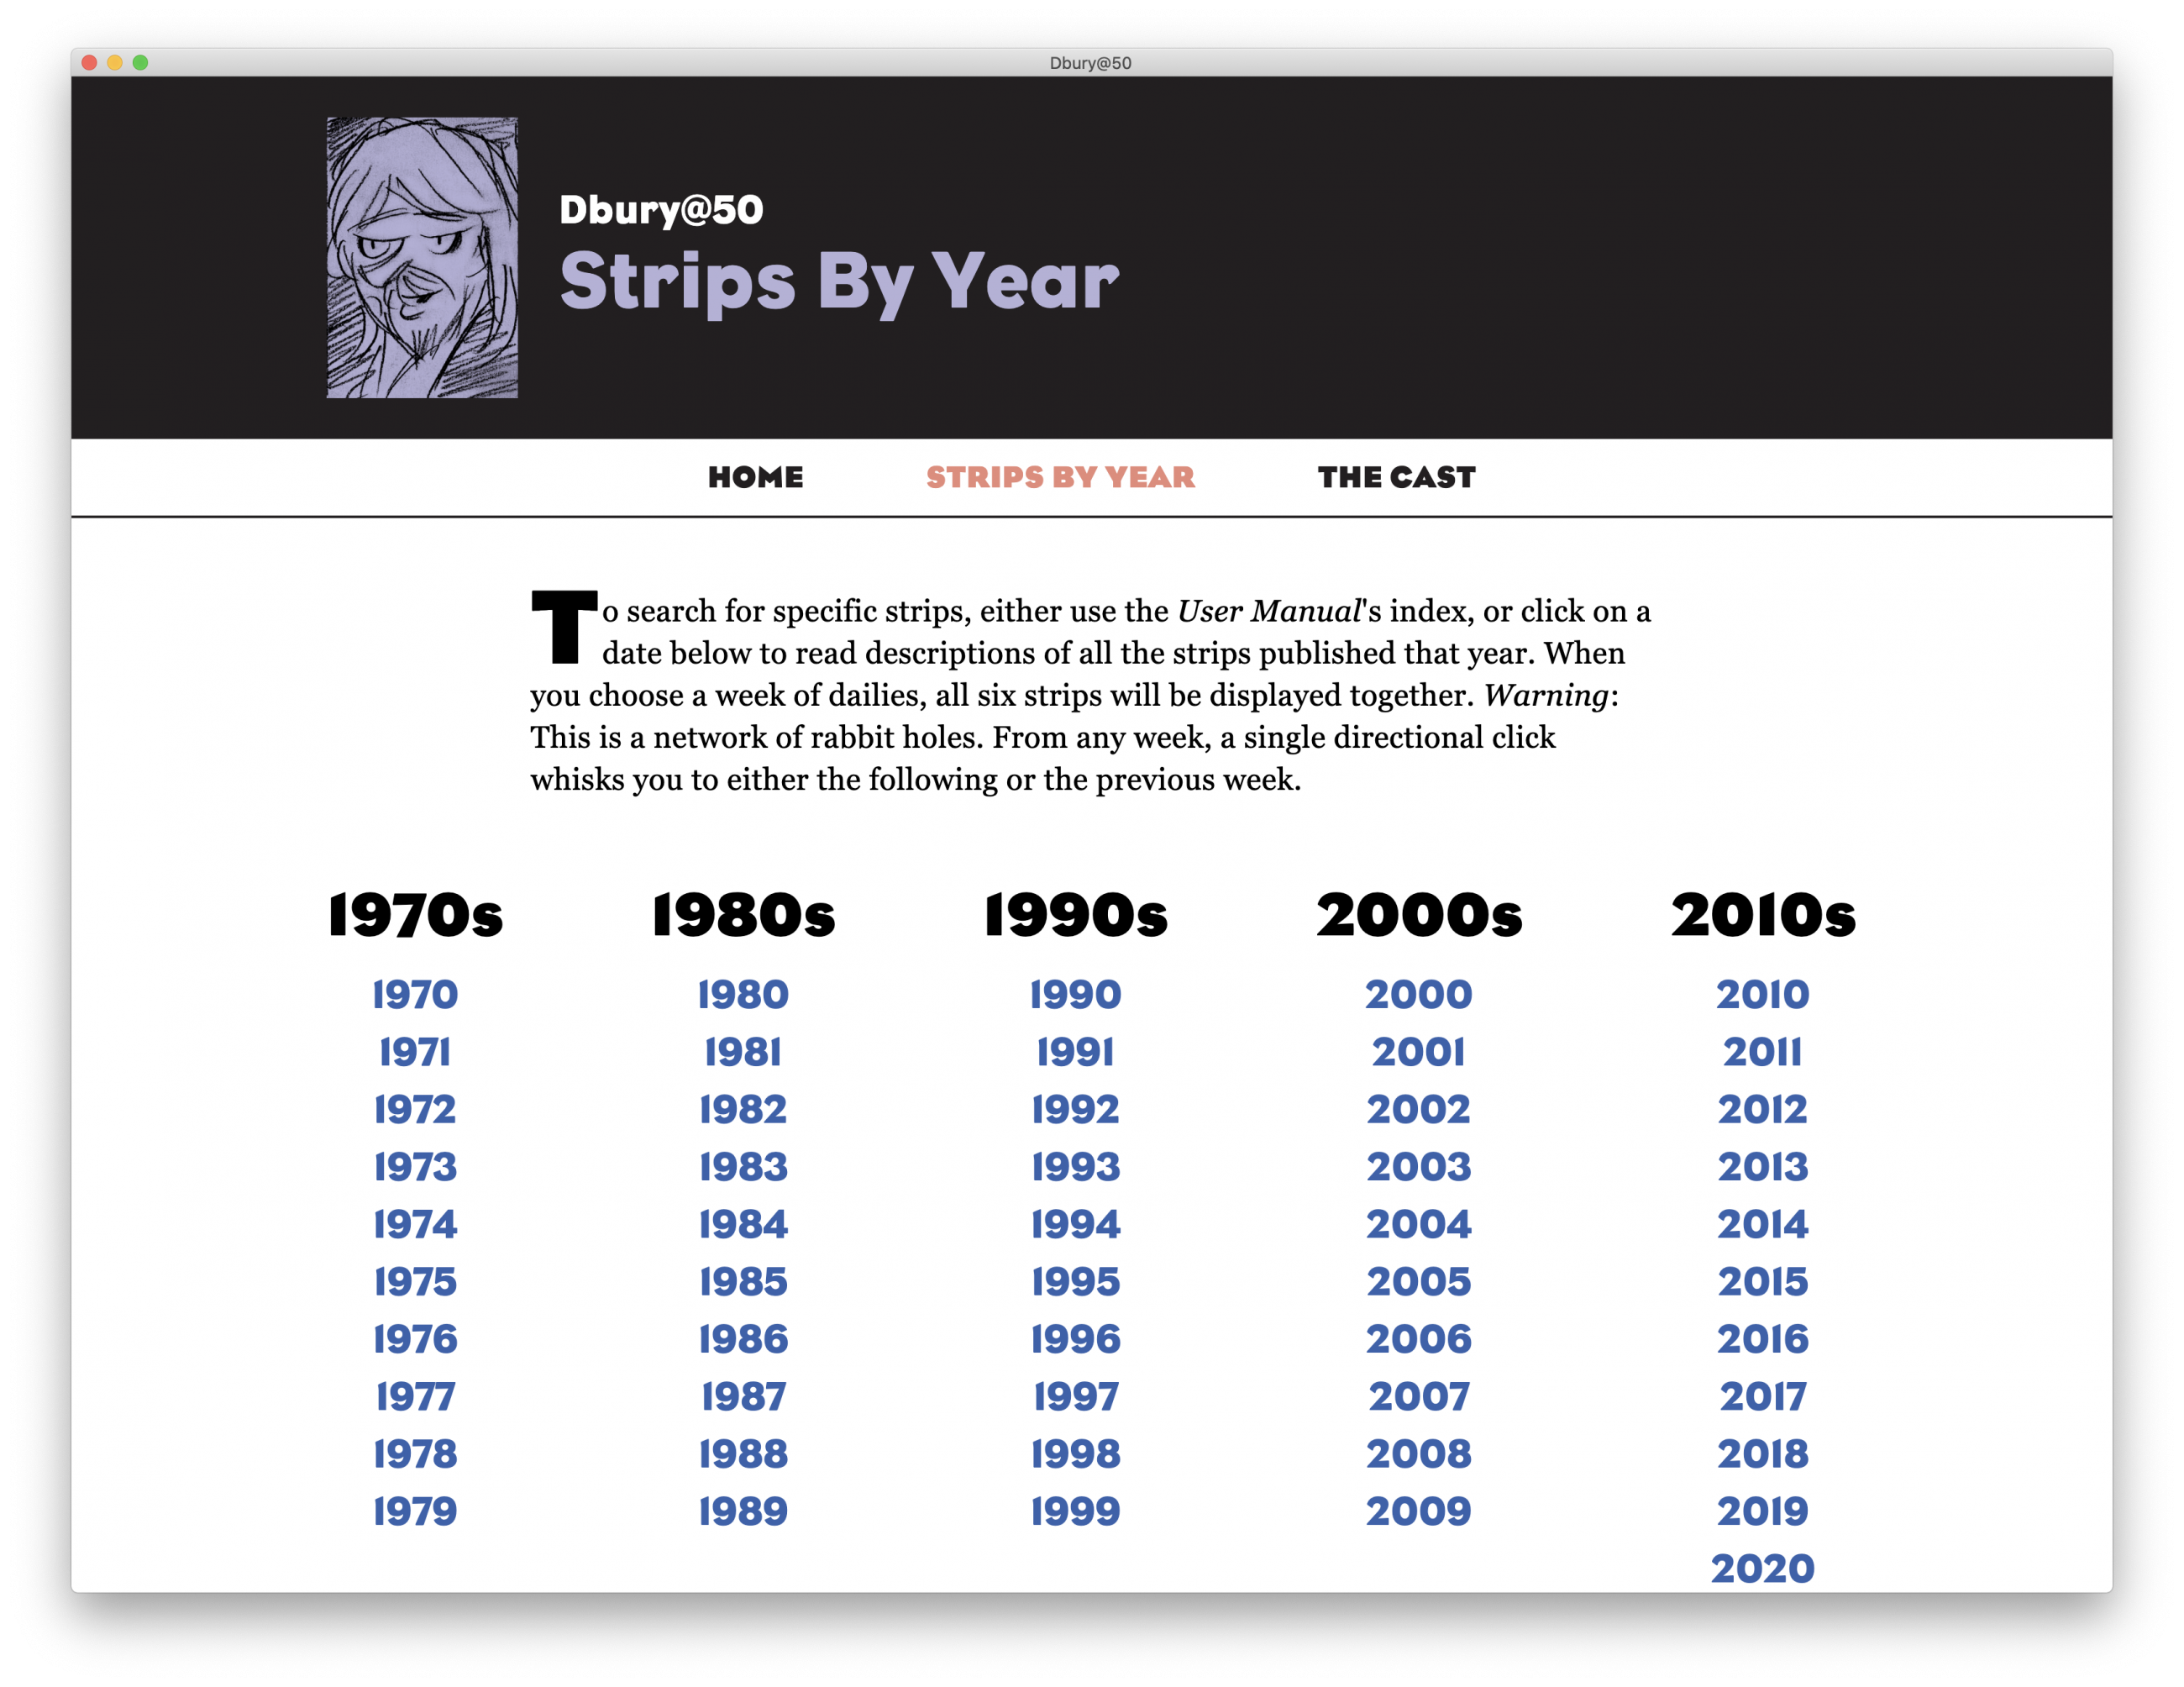 Strips by year